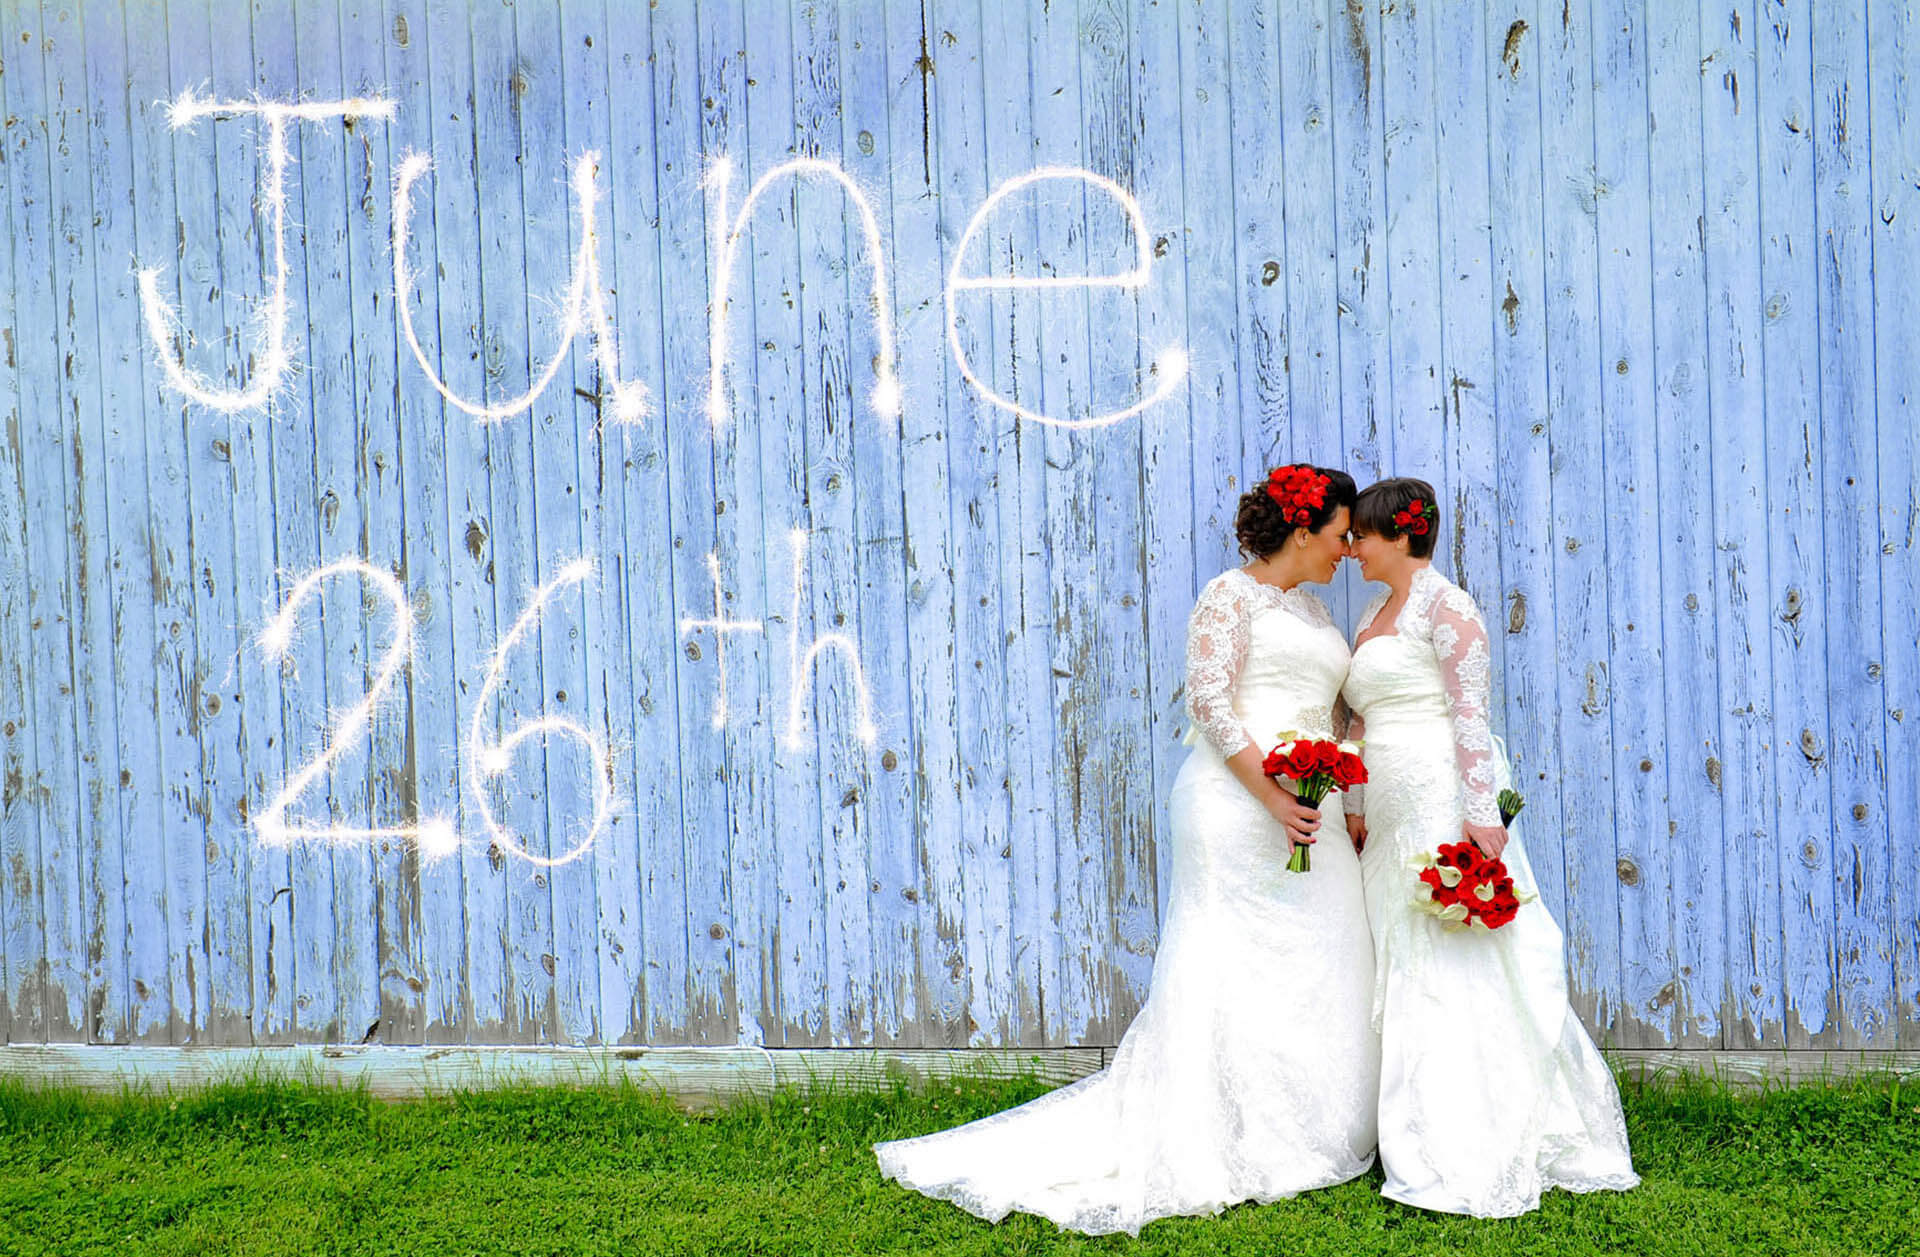 A Metro Detroit, Michigan lesbian couple just happened to get married on June 26th, a historic day legalizing gay marriage taken by photographer voted Best Michigan Wedding Photographer, Marci Curtis.